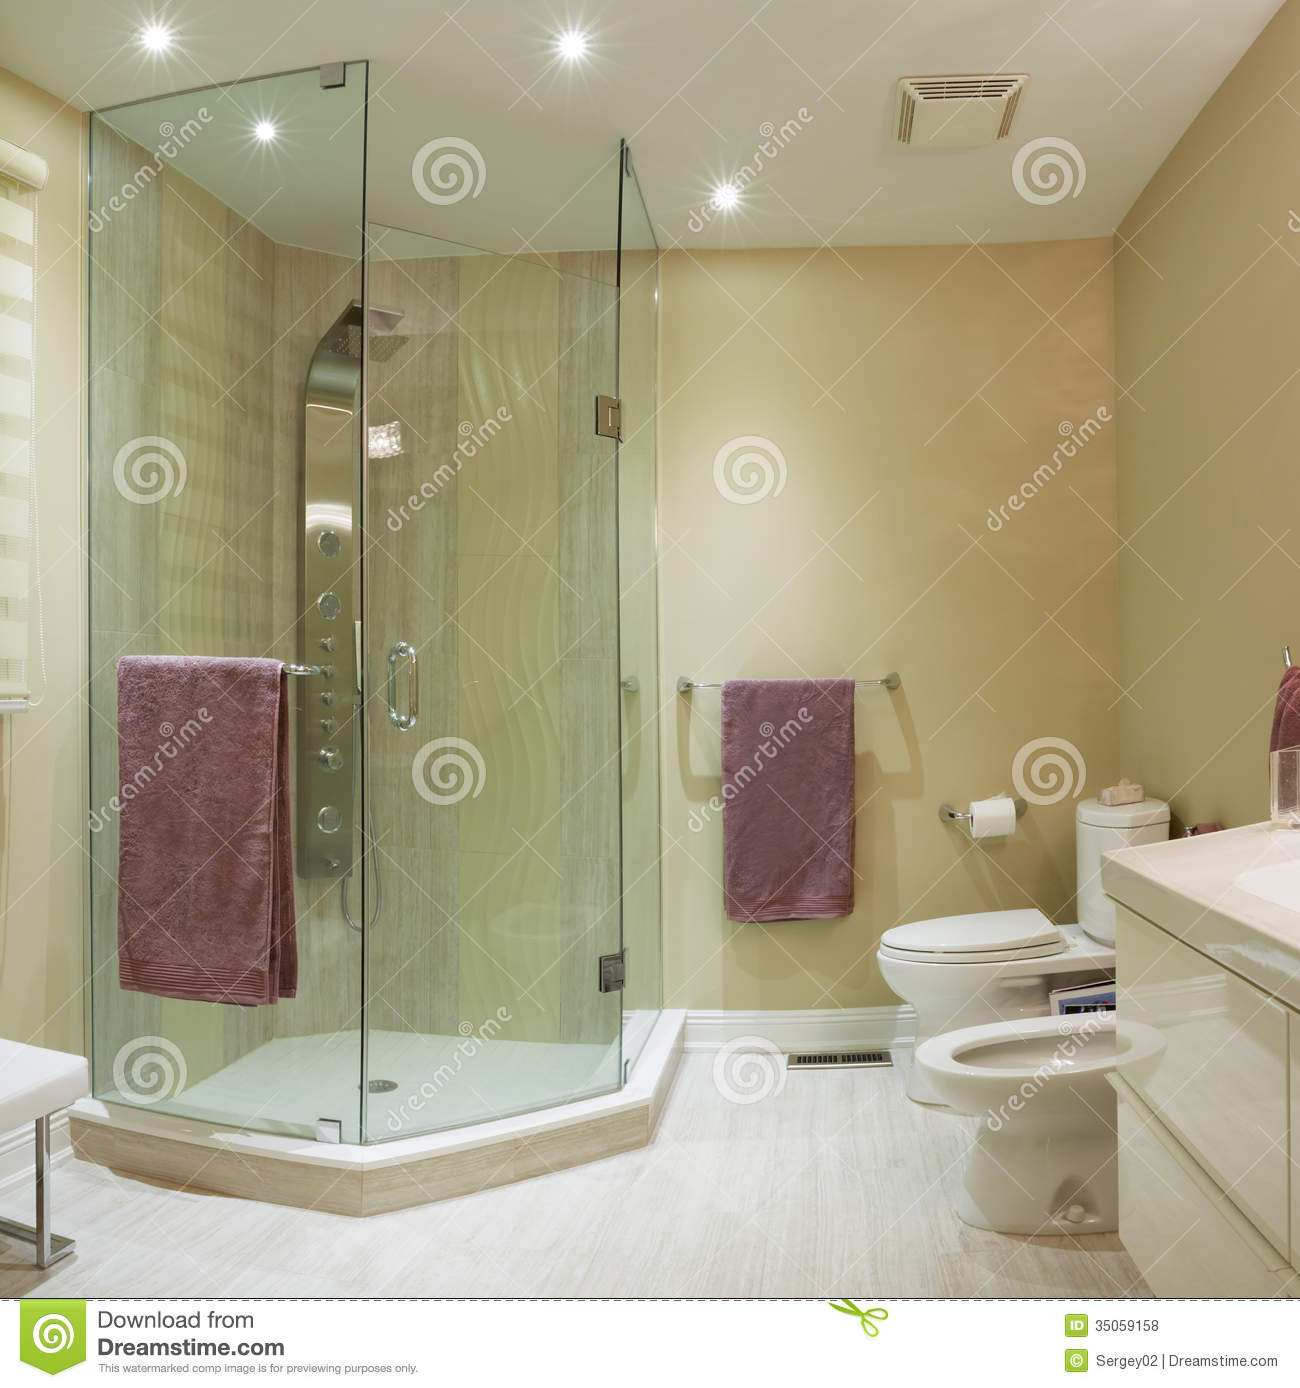 Interior design royalty free stock photos image 35059158 - Interior bathroom design ...